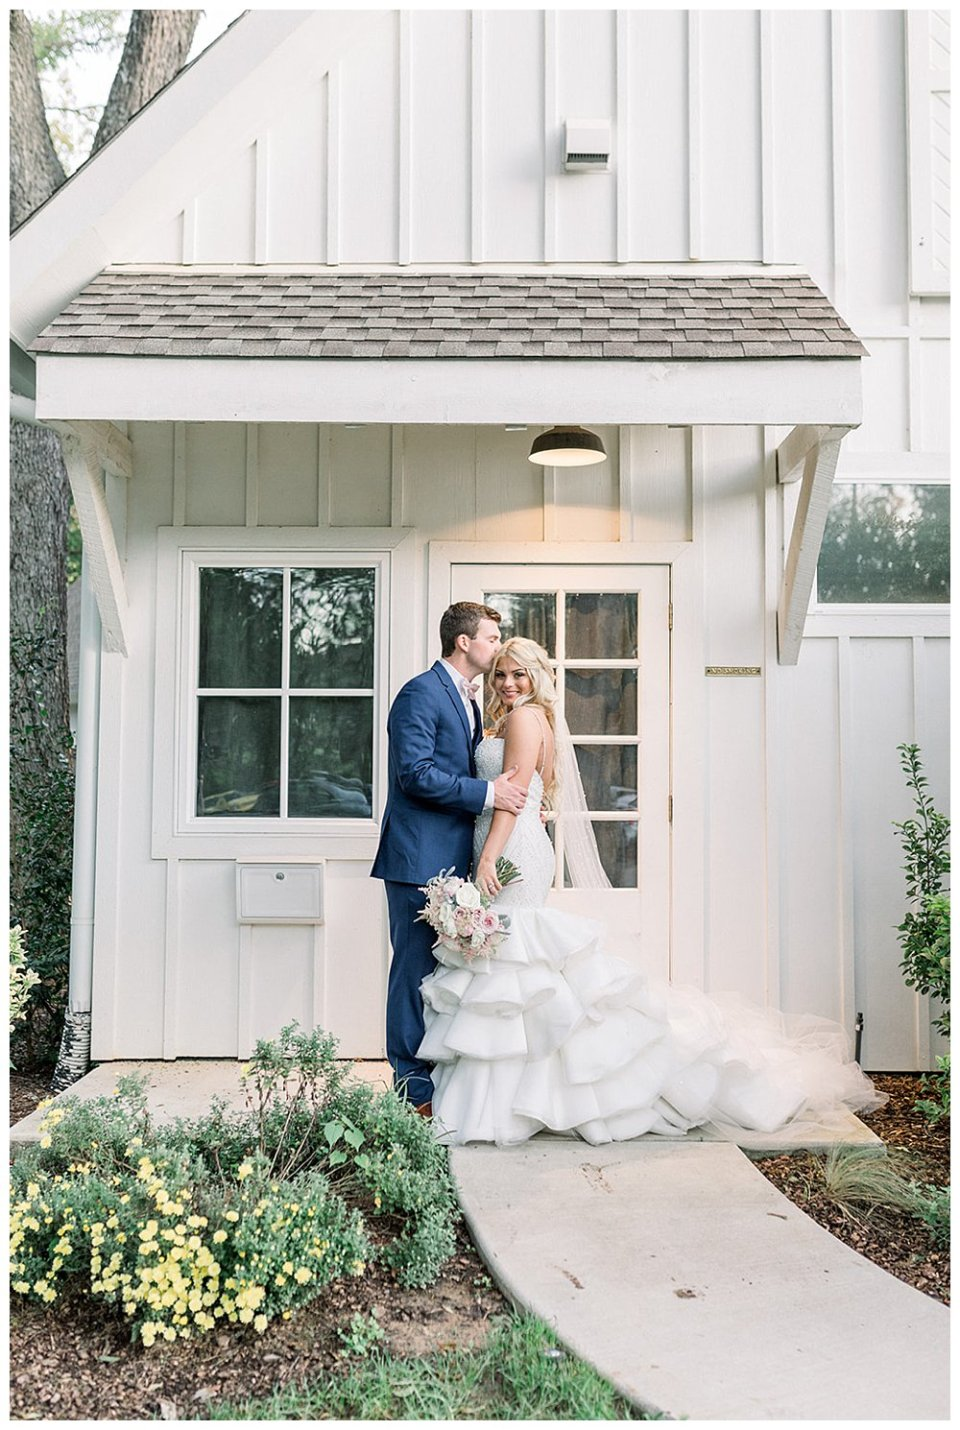 Groom kisses bride on forehead at Spain Ranch